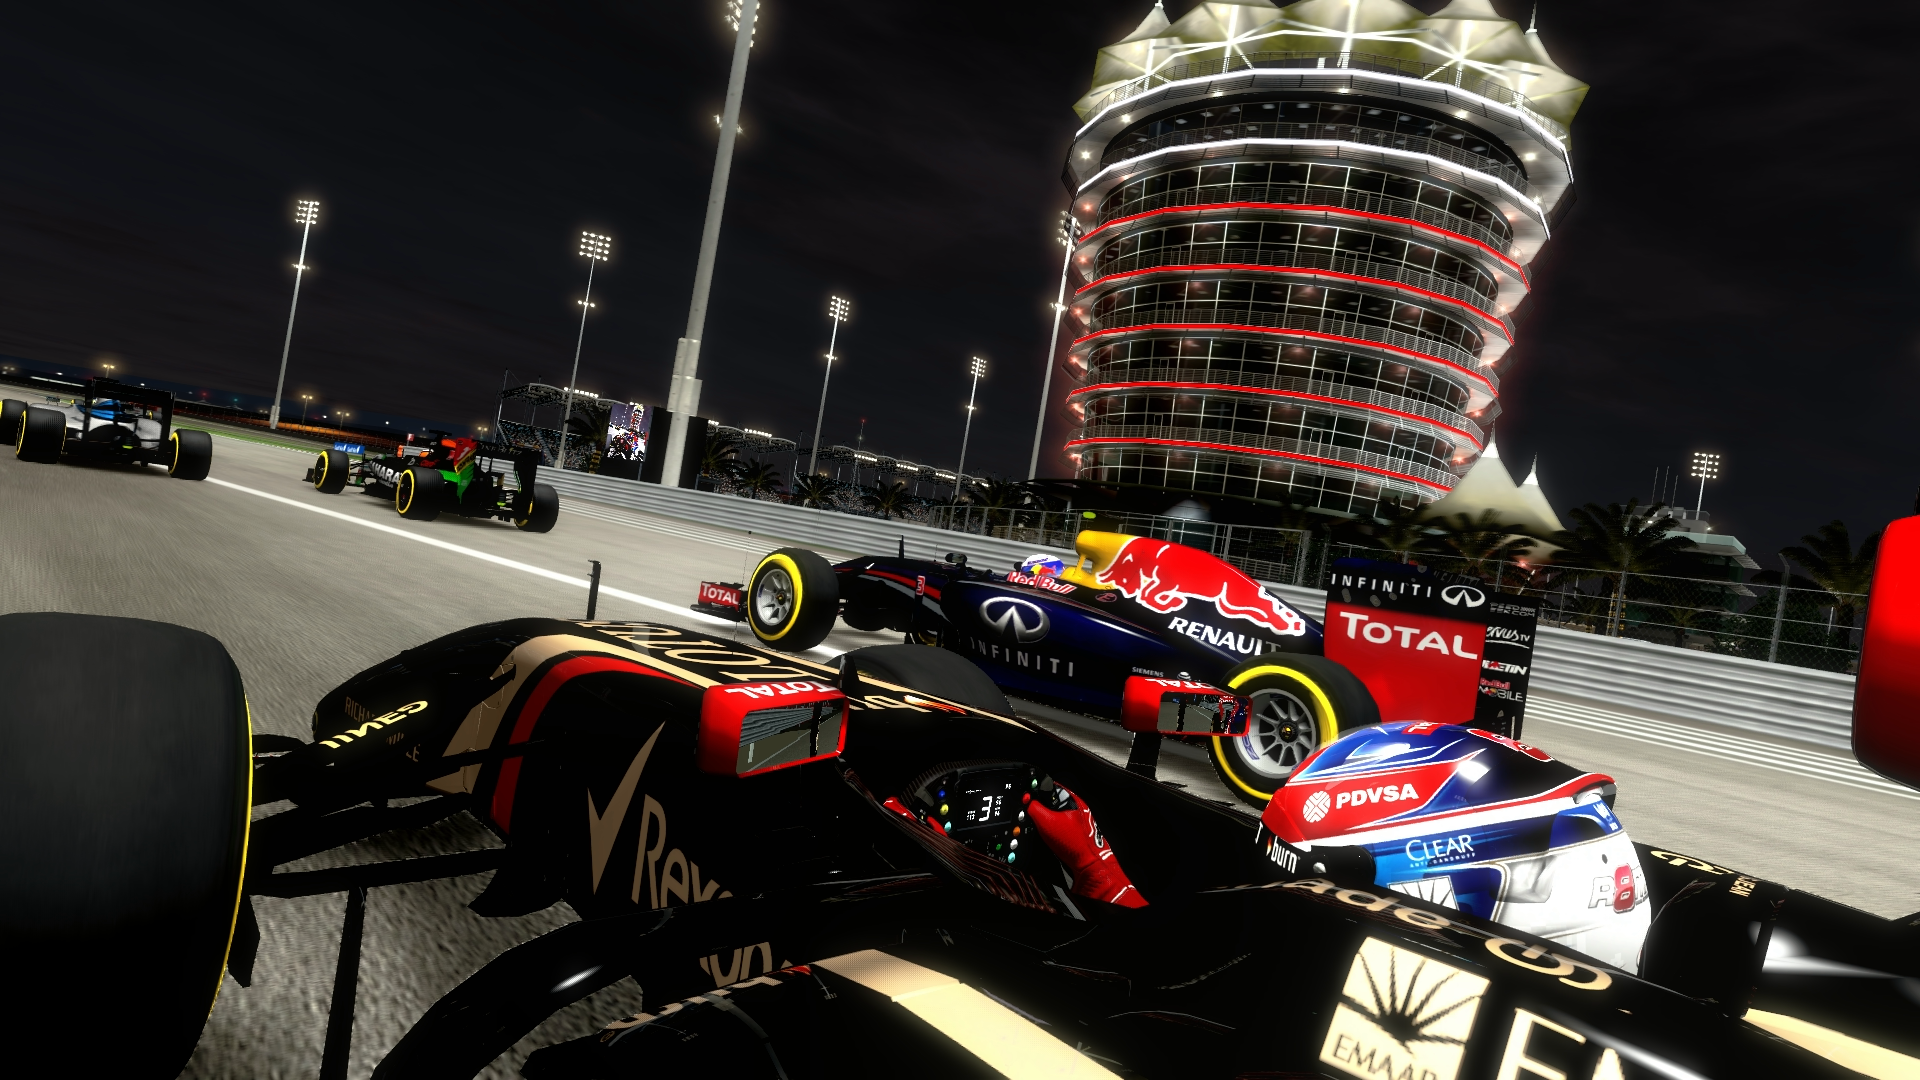 F1_2014_280714_screenshot_002_1410771427